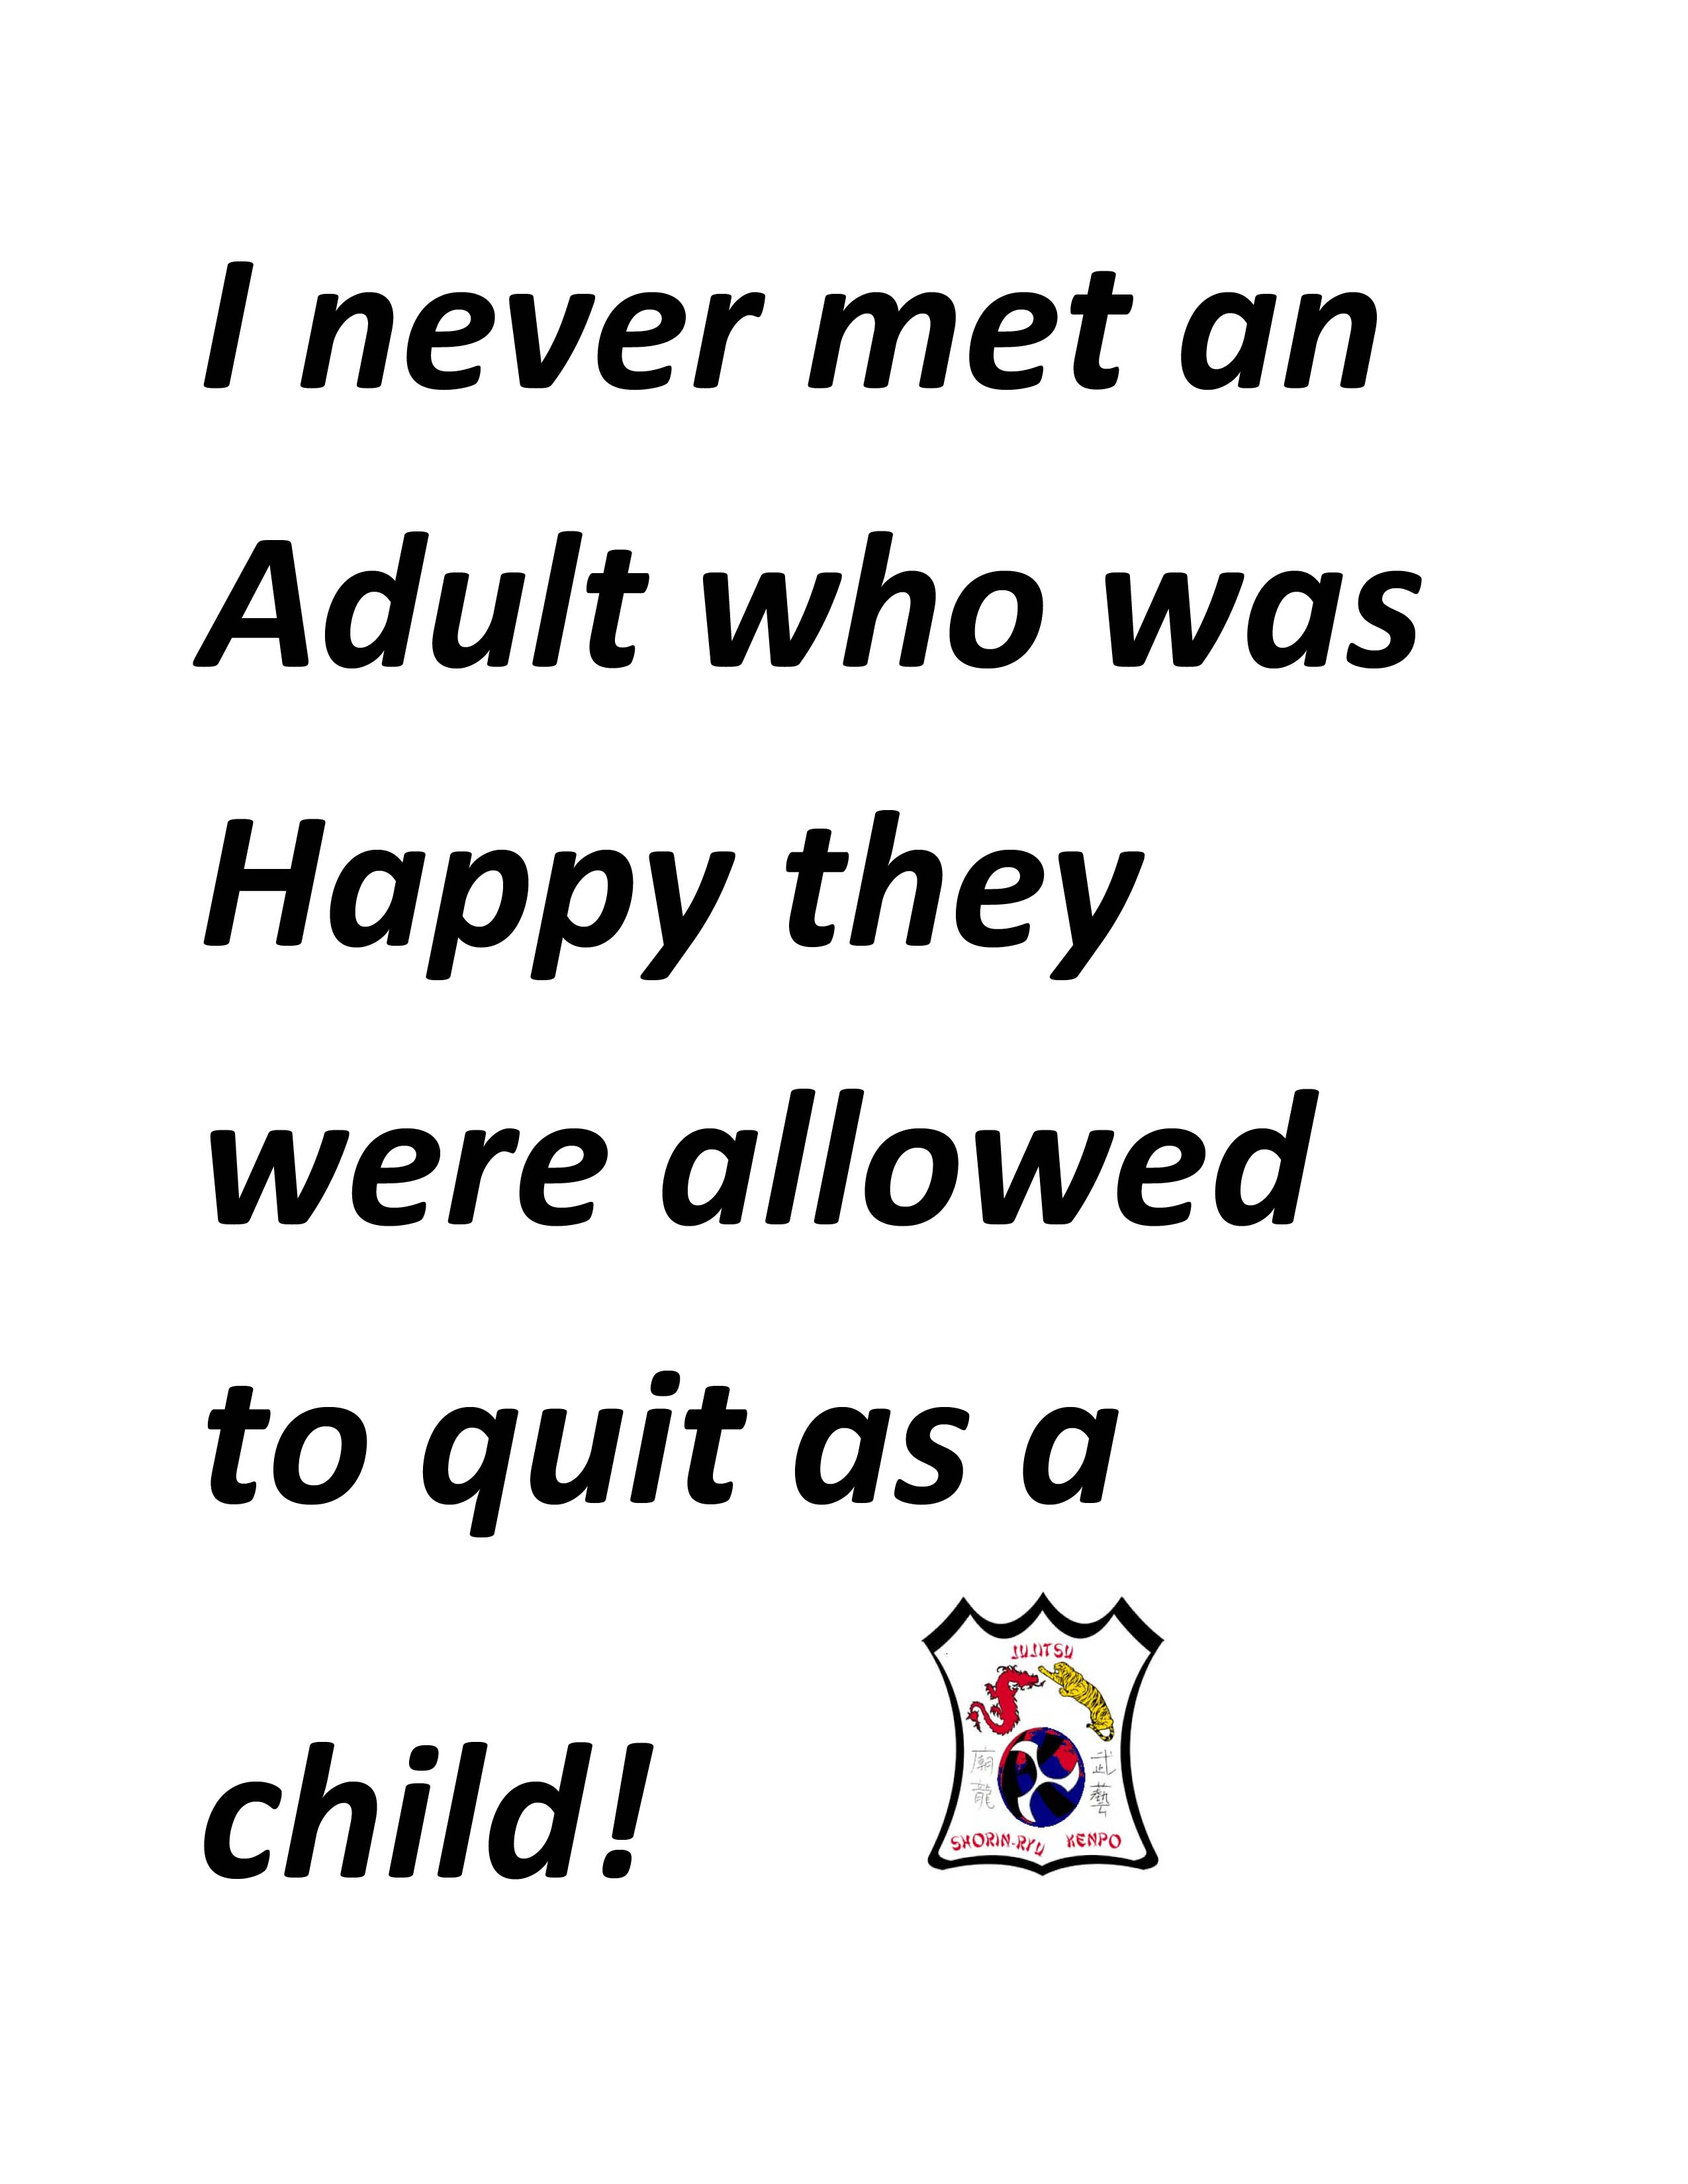 Microsoft Word - I never met an Adult who was Happy they were al